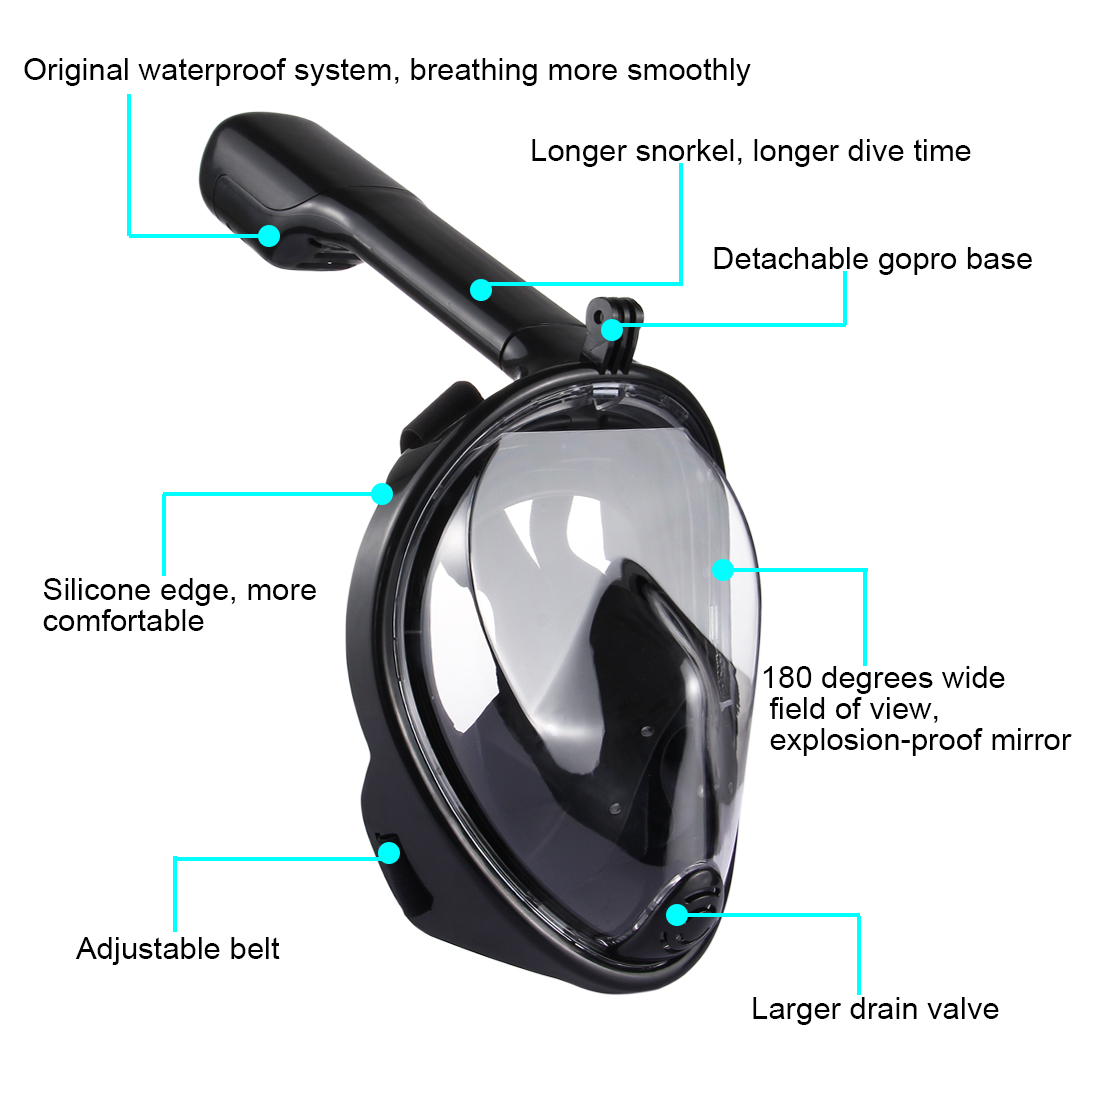 PULUZ 220mm Tube Water Sports Diving Equipment Full Dry Snorkel Mask for GoPro HERO5 /4 /3+ /3 /2 /1, S/M Size (Black)